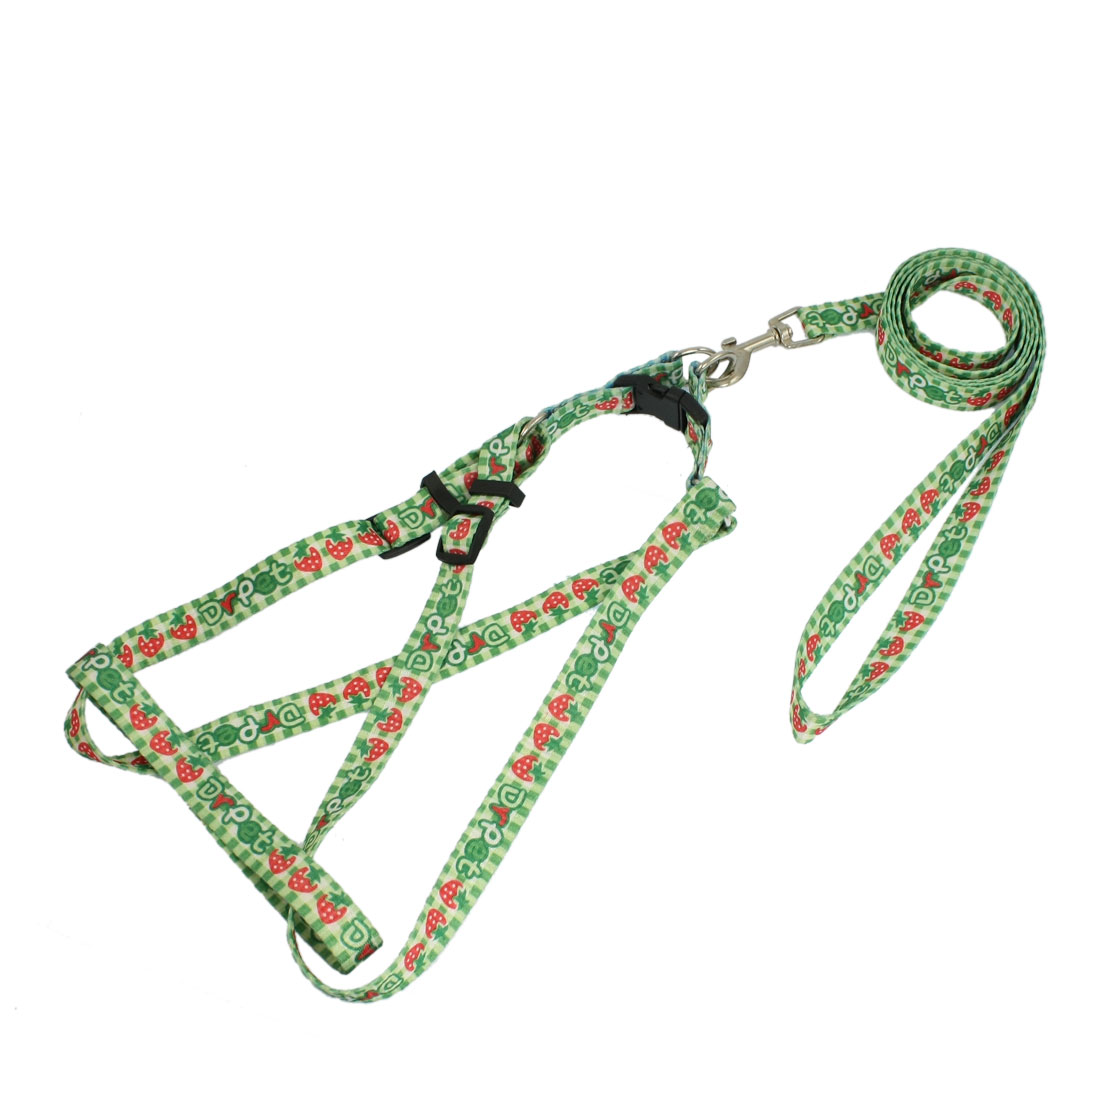 Strawberry Print Doggie Rope Adjustable Dog Harness Halter Leash Set 1.1M